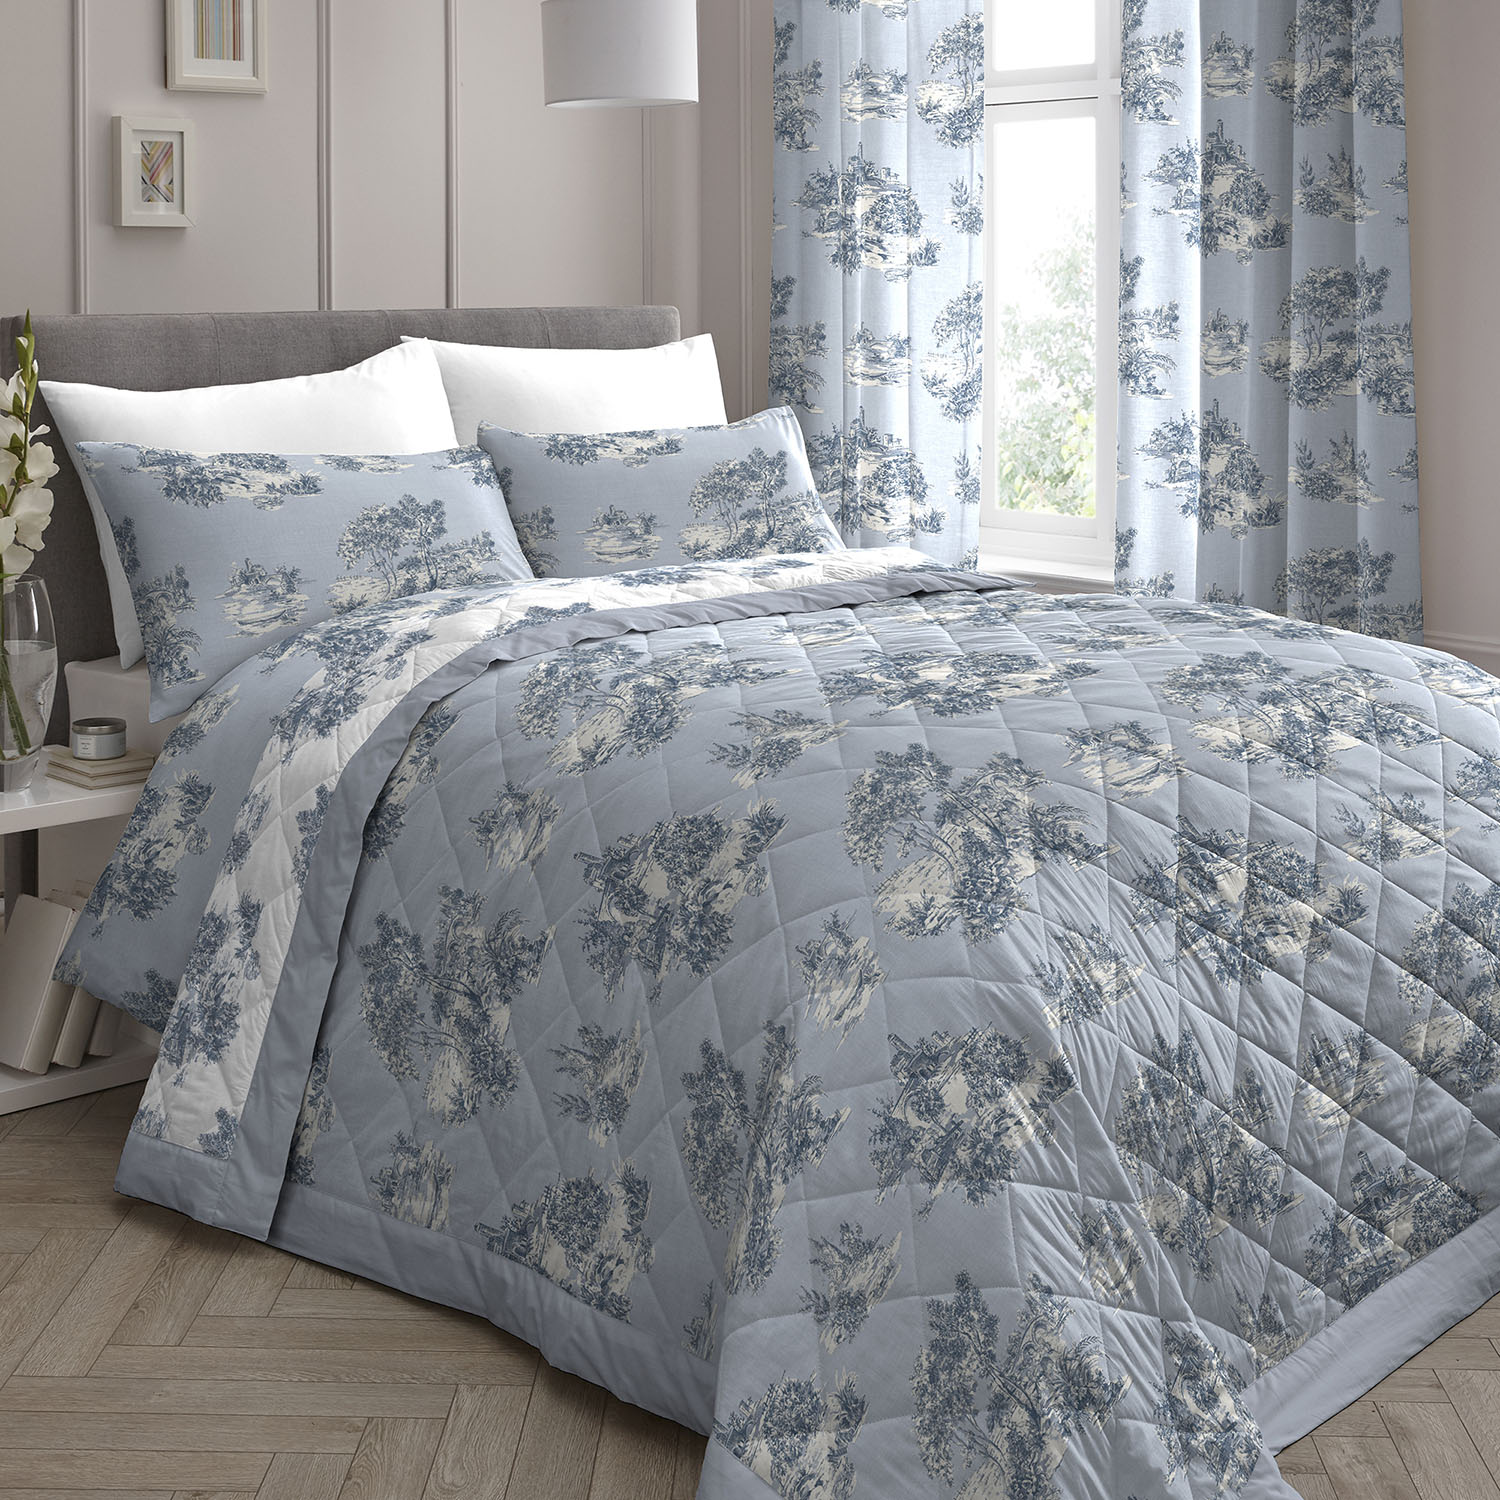 Dreams & Drapes Country Toile Bedspread